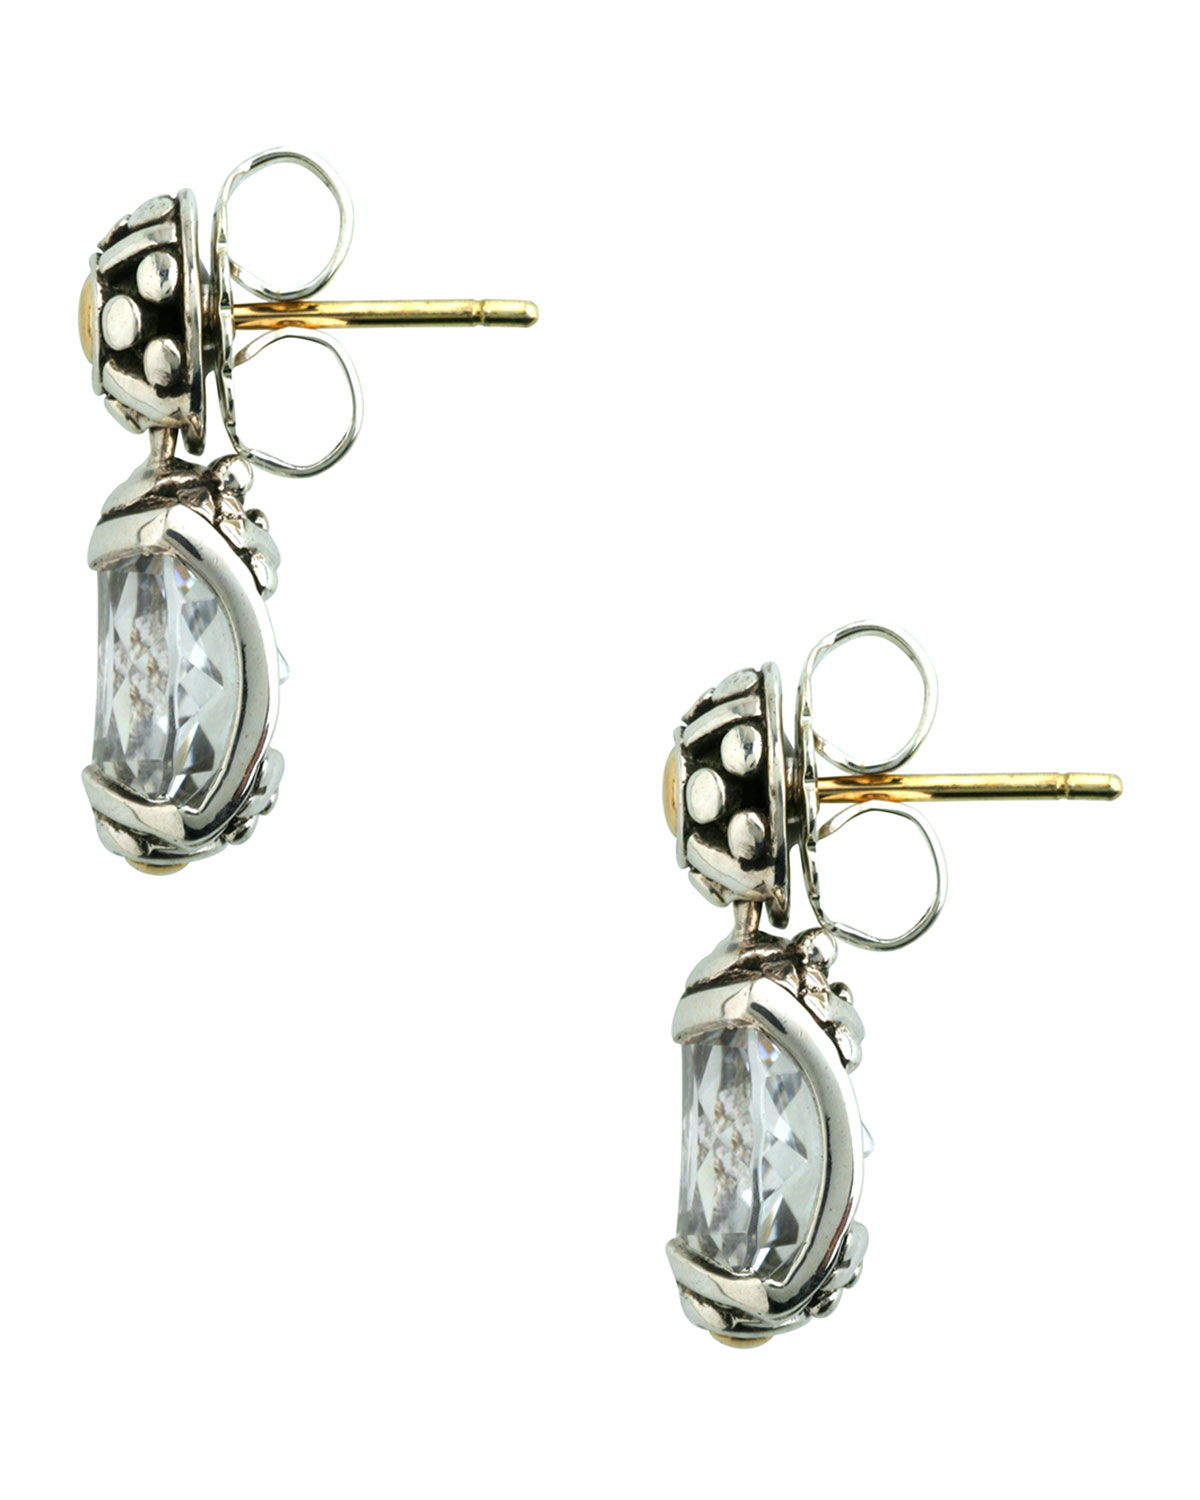 John hardy batu sari white topaz earrings in blue lyst for John hardy jewelry factory bali